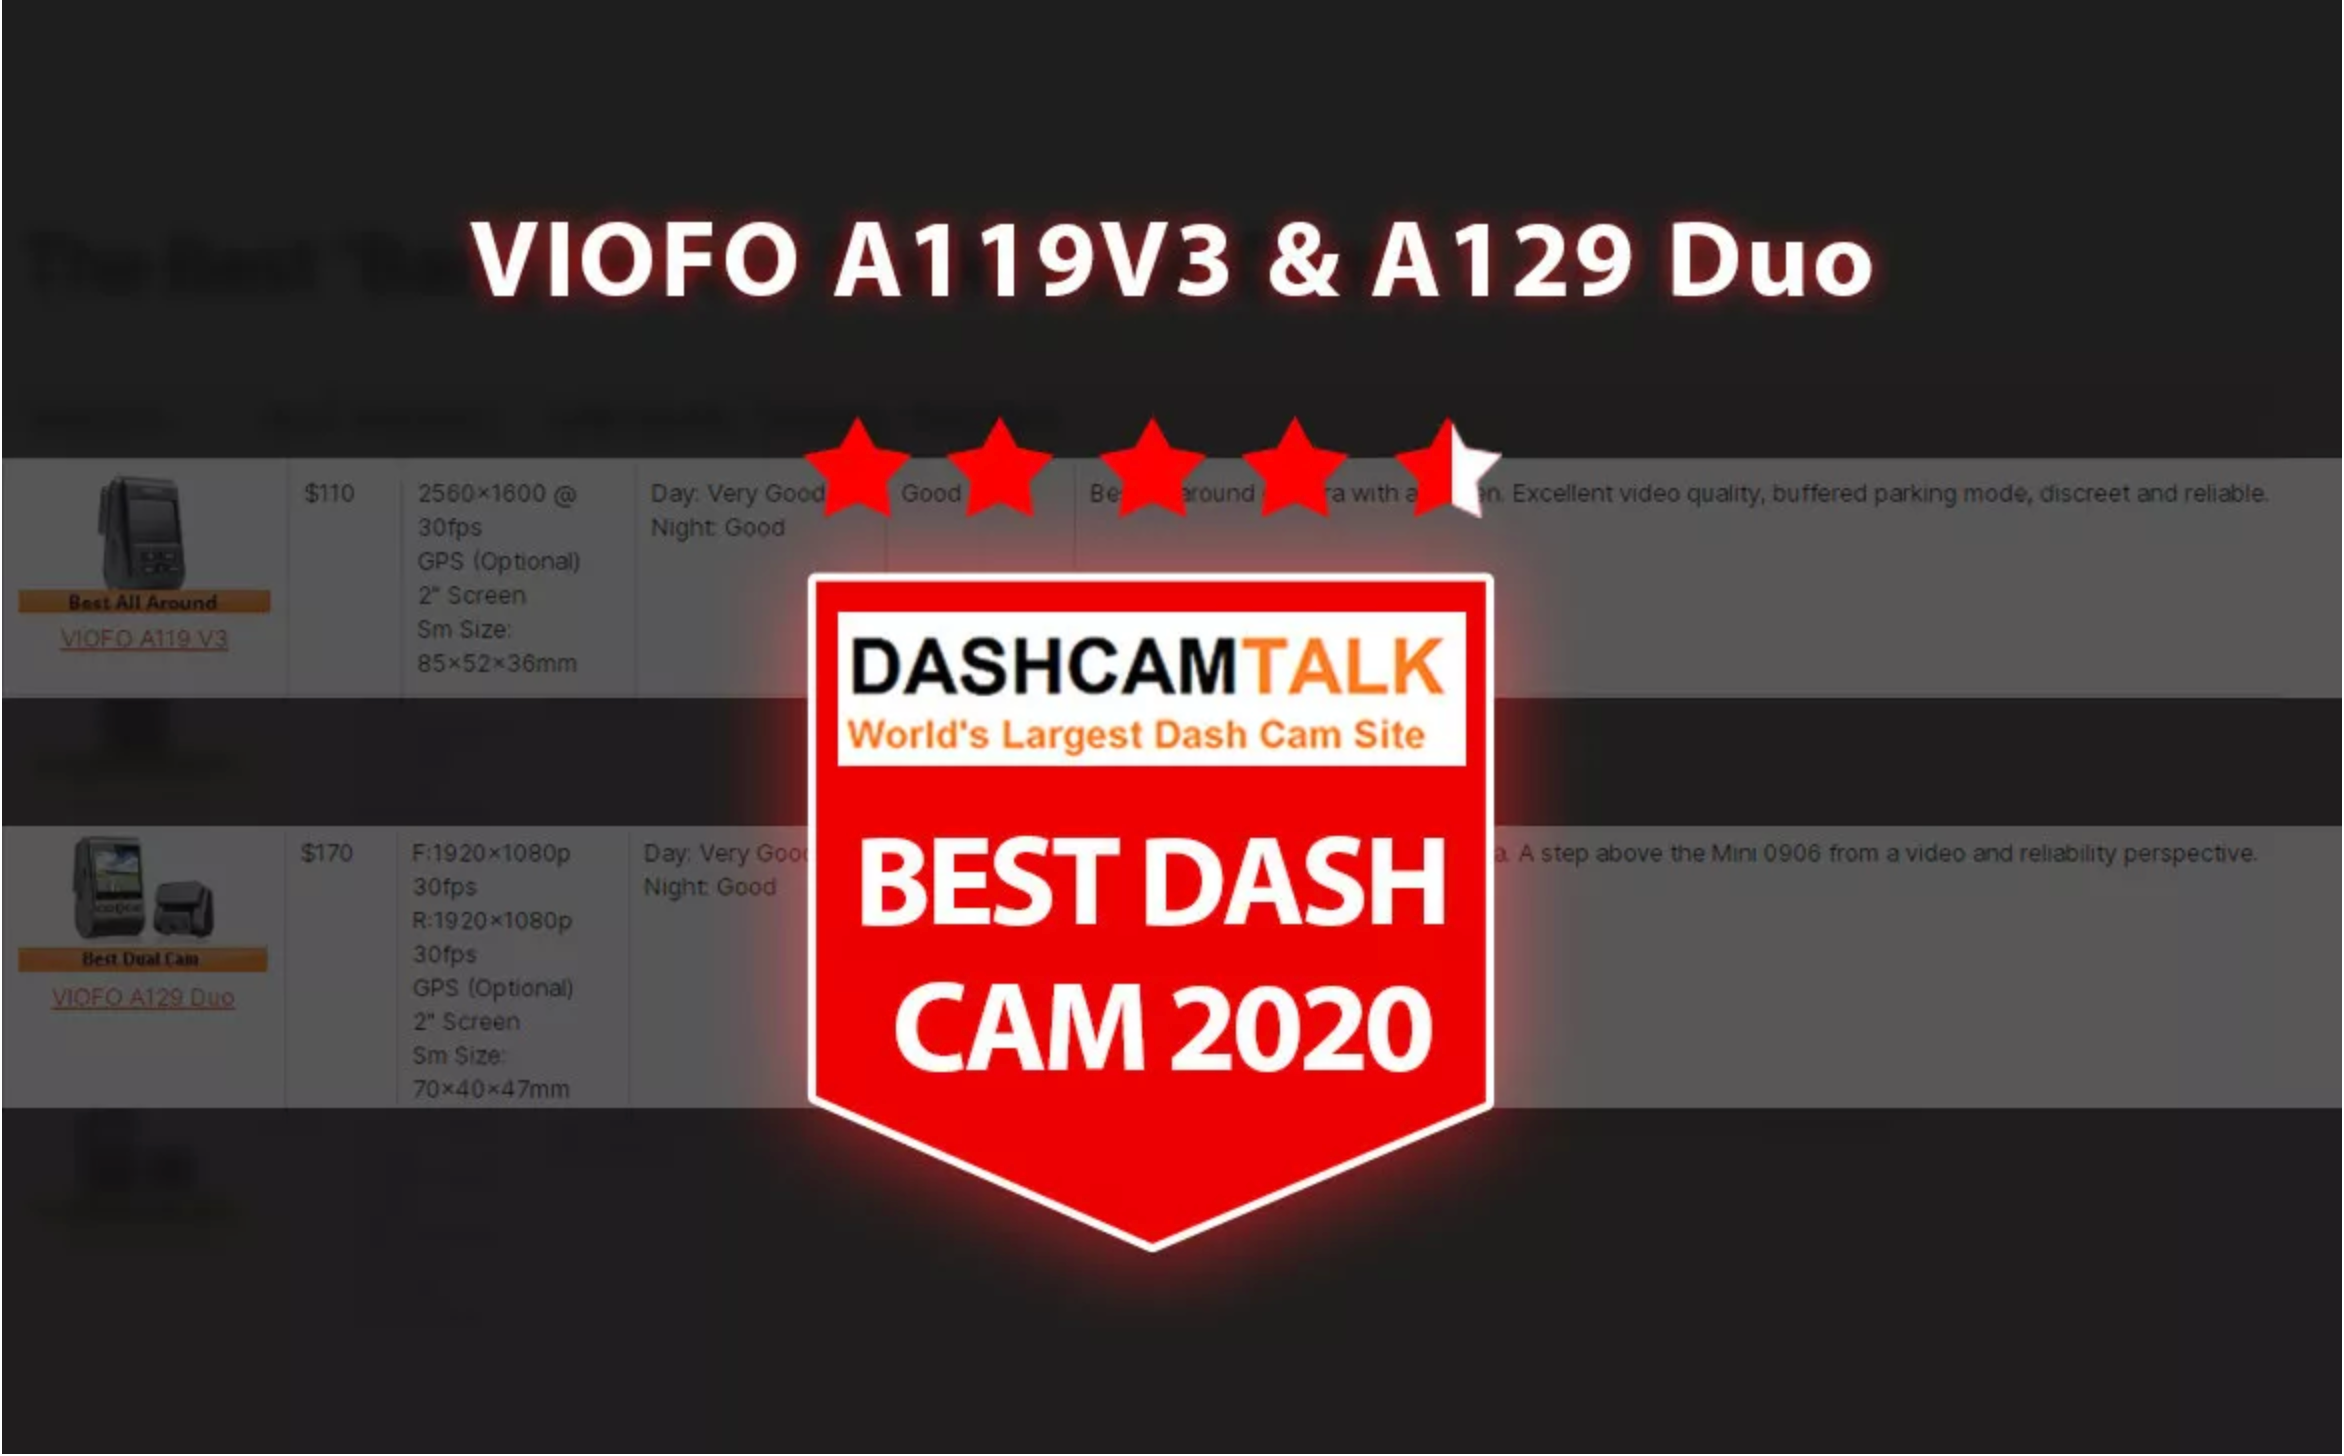 VIOFO Dashcams Regarded as Best Dash Cam 2020